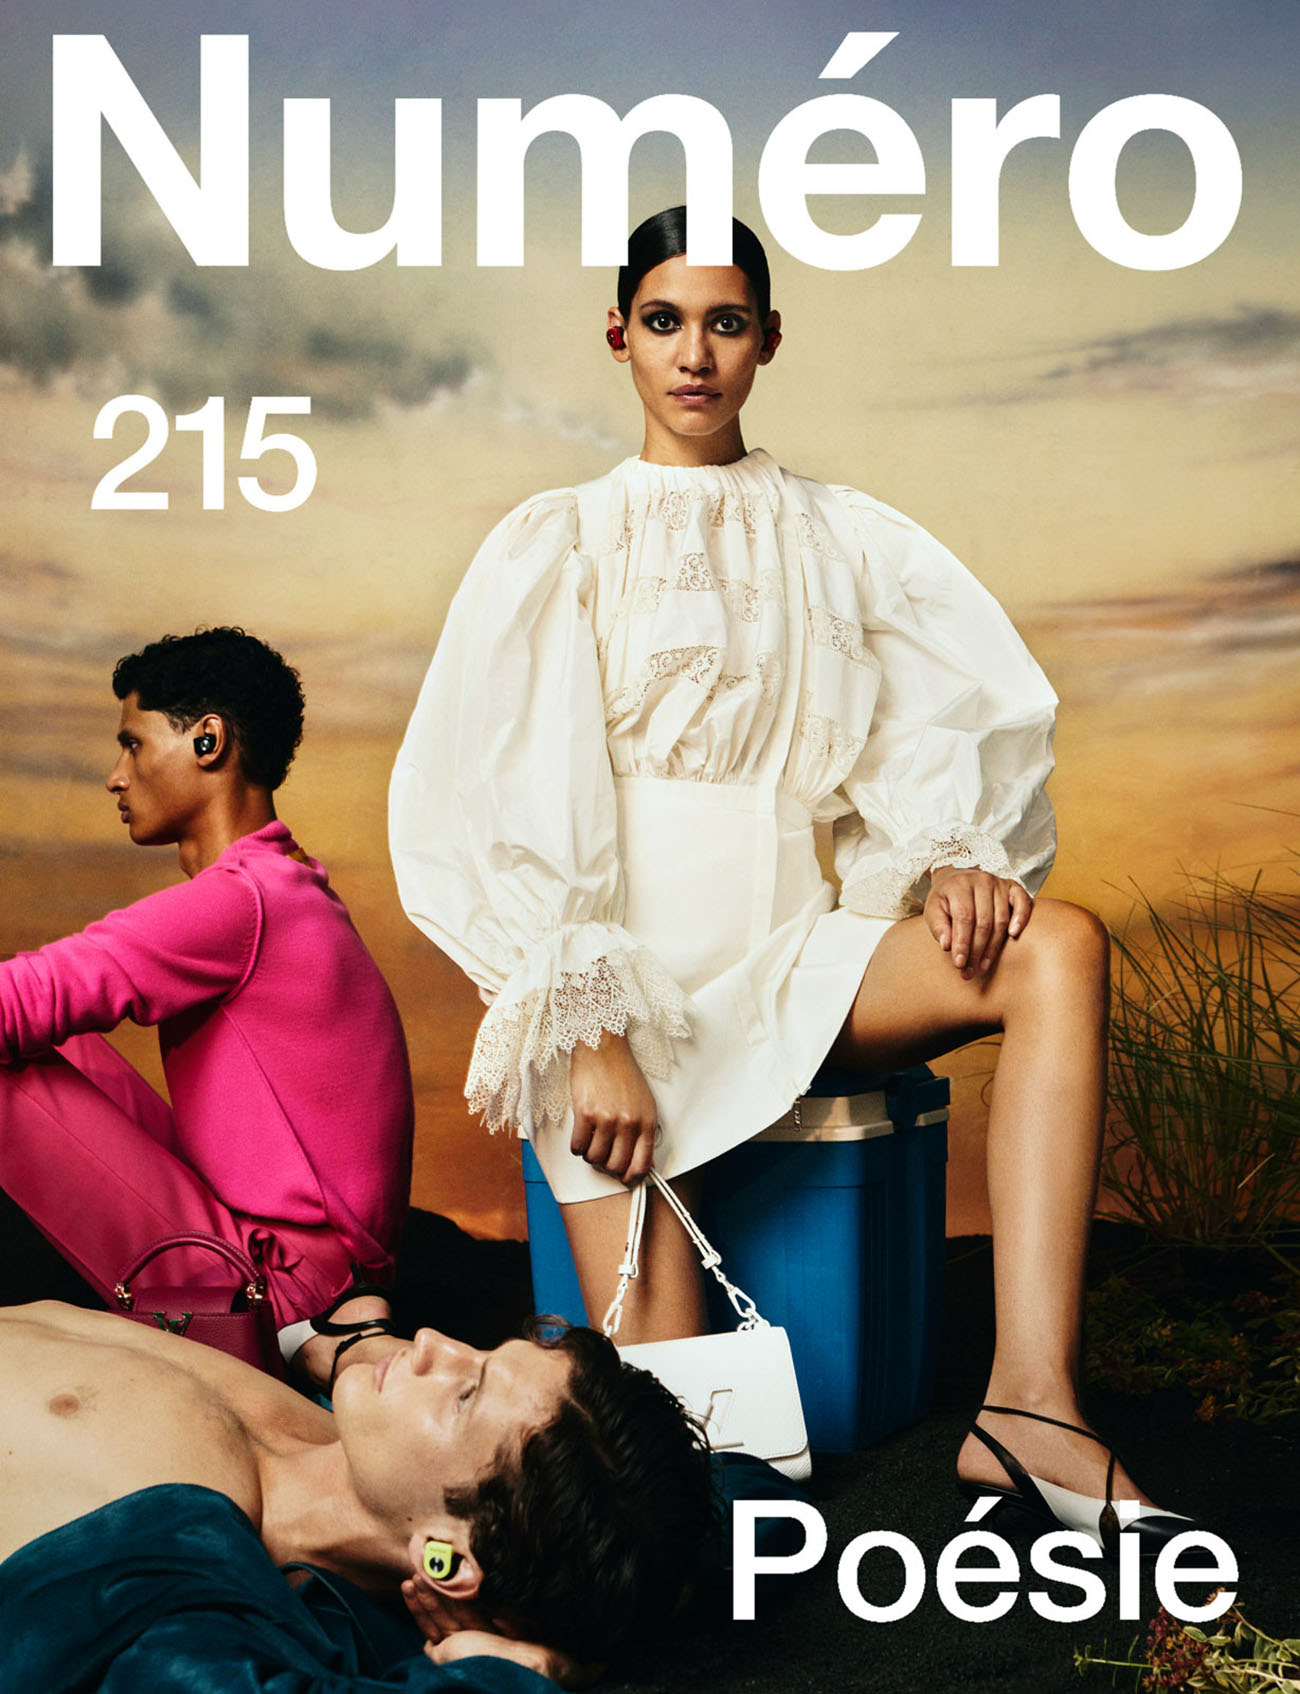 Kaya Wilkins covers Numéro August 2020 by Dan Beleiu